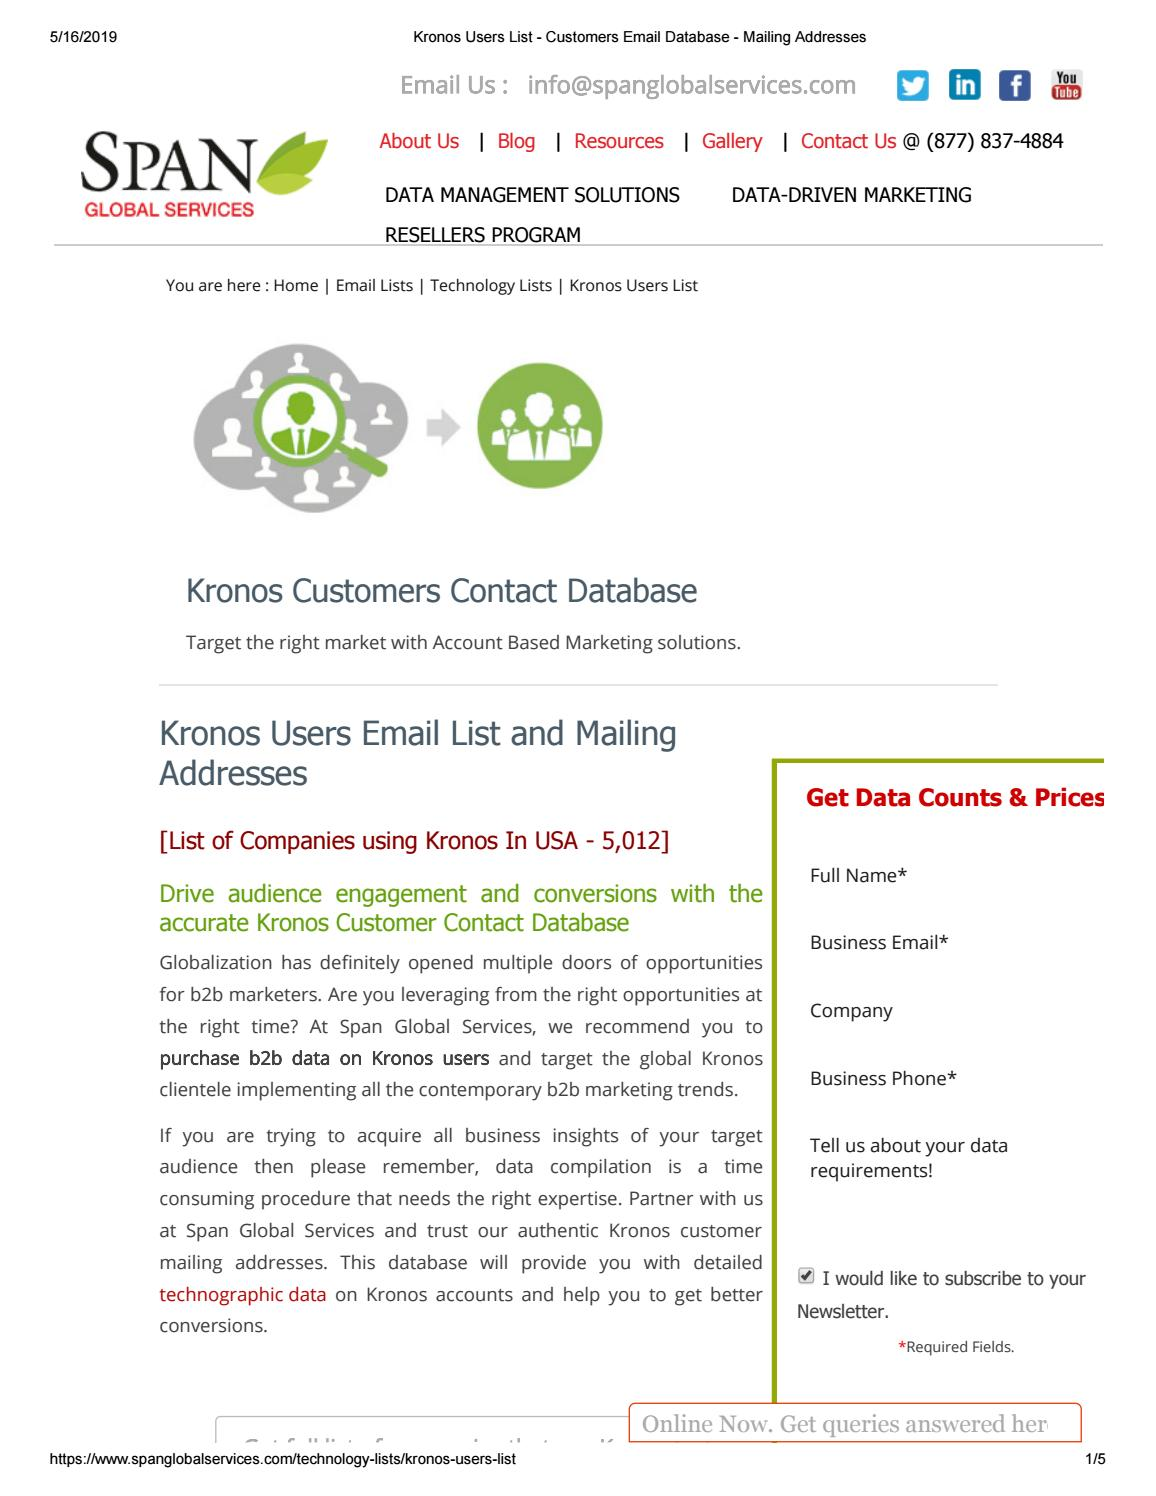 List of Companies using Kronos - Span Global Services by